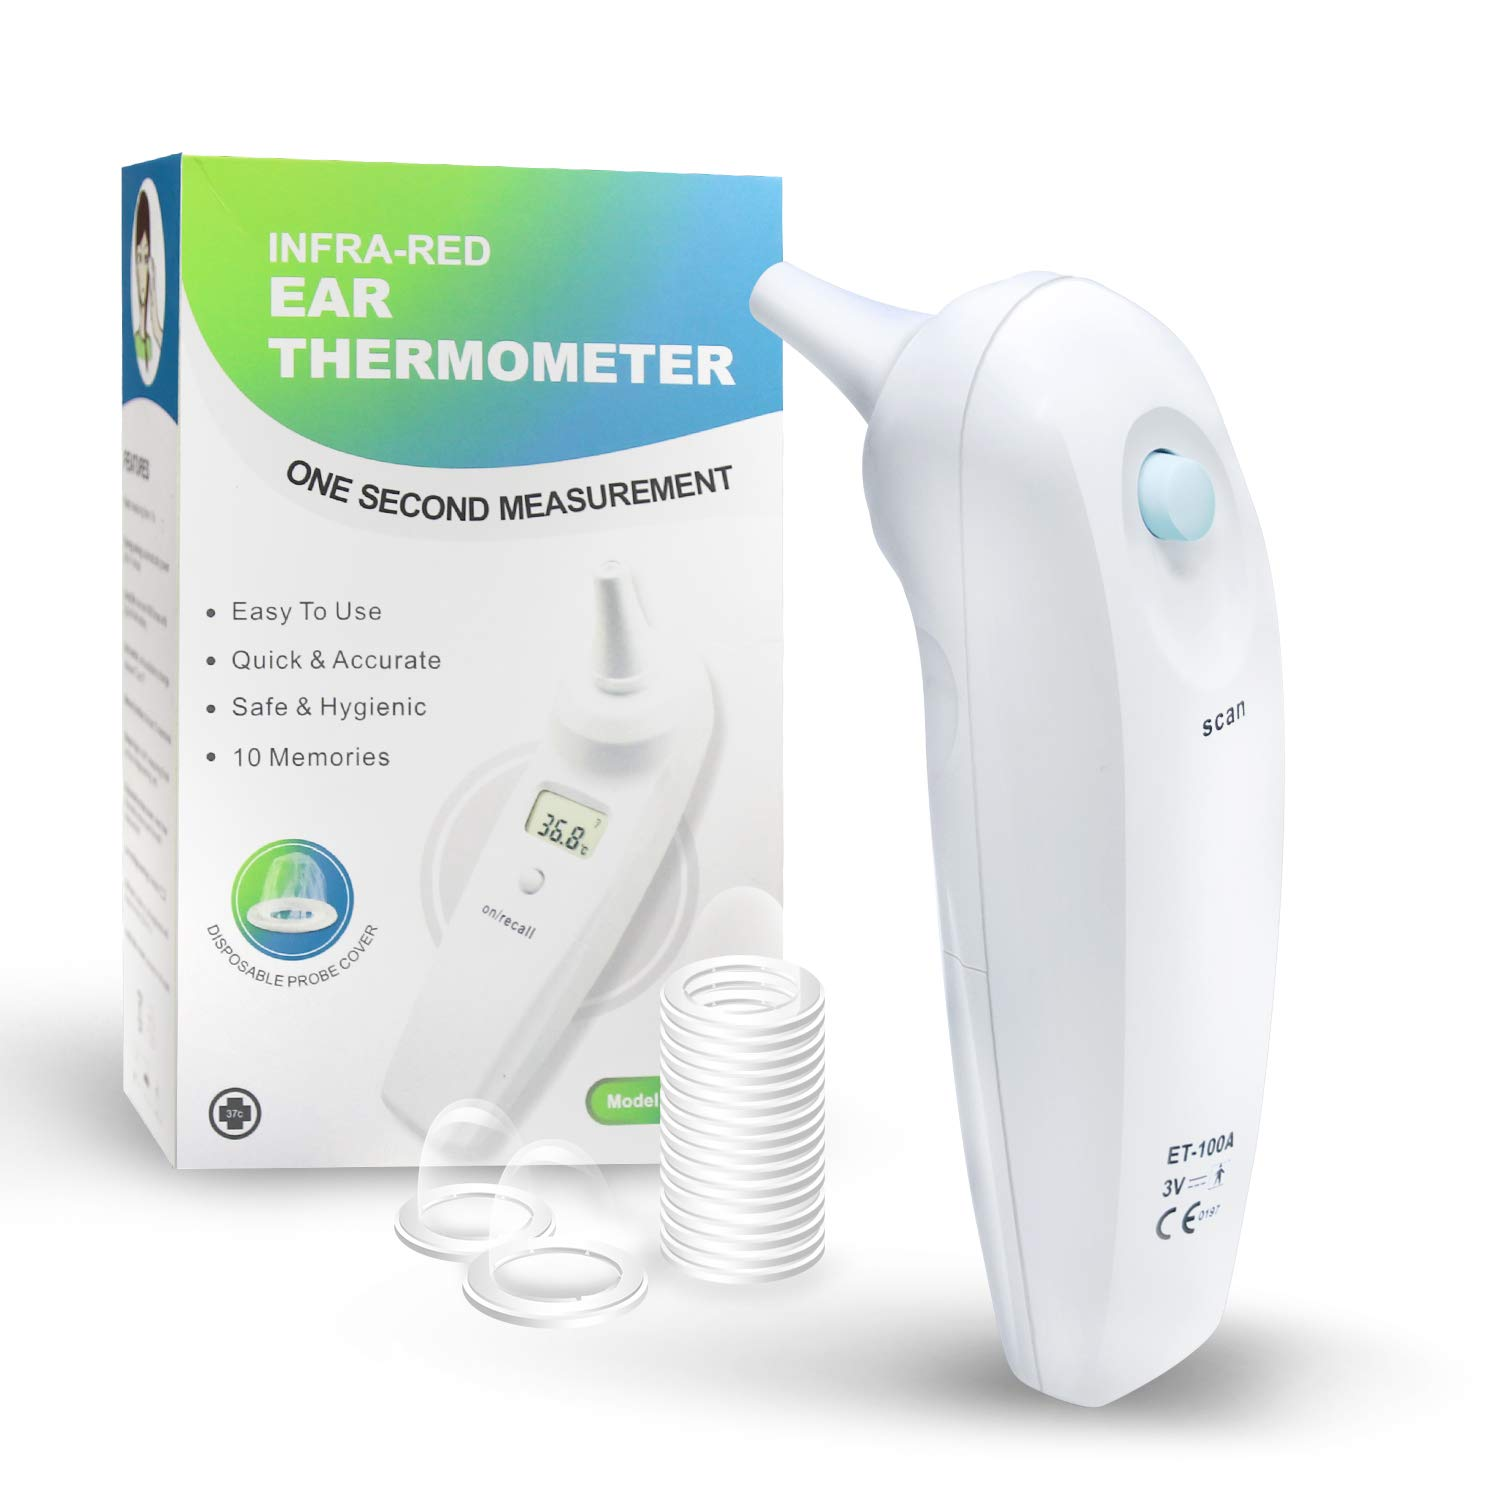 Digital Infra-red Ear Thermometer Baby Ear Thermometer with 20 Plastic Disposable Probe Covers for Babies, Kids and Adults